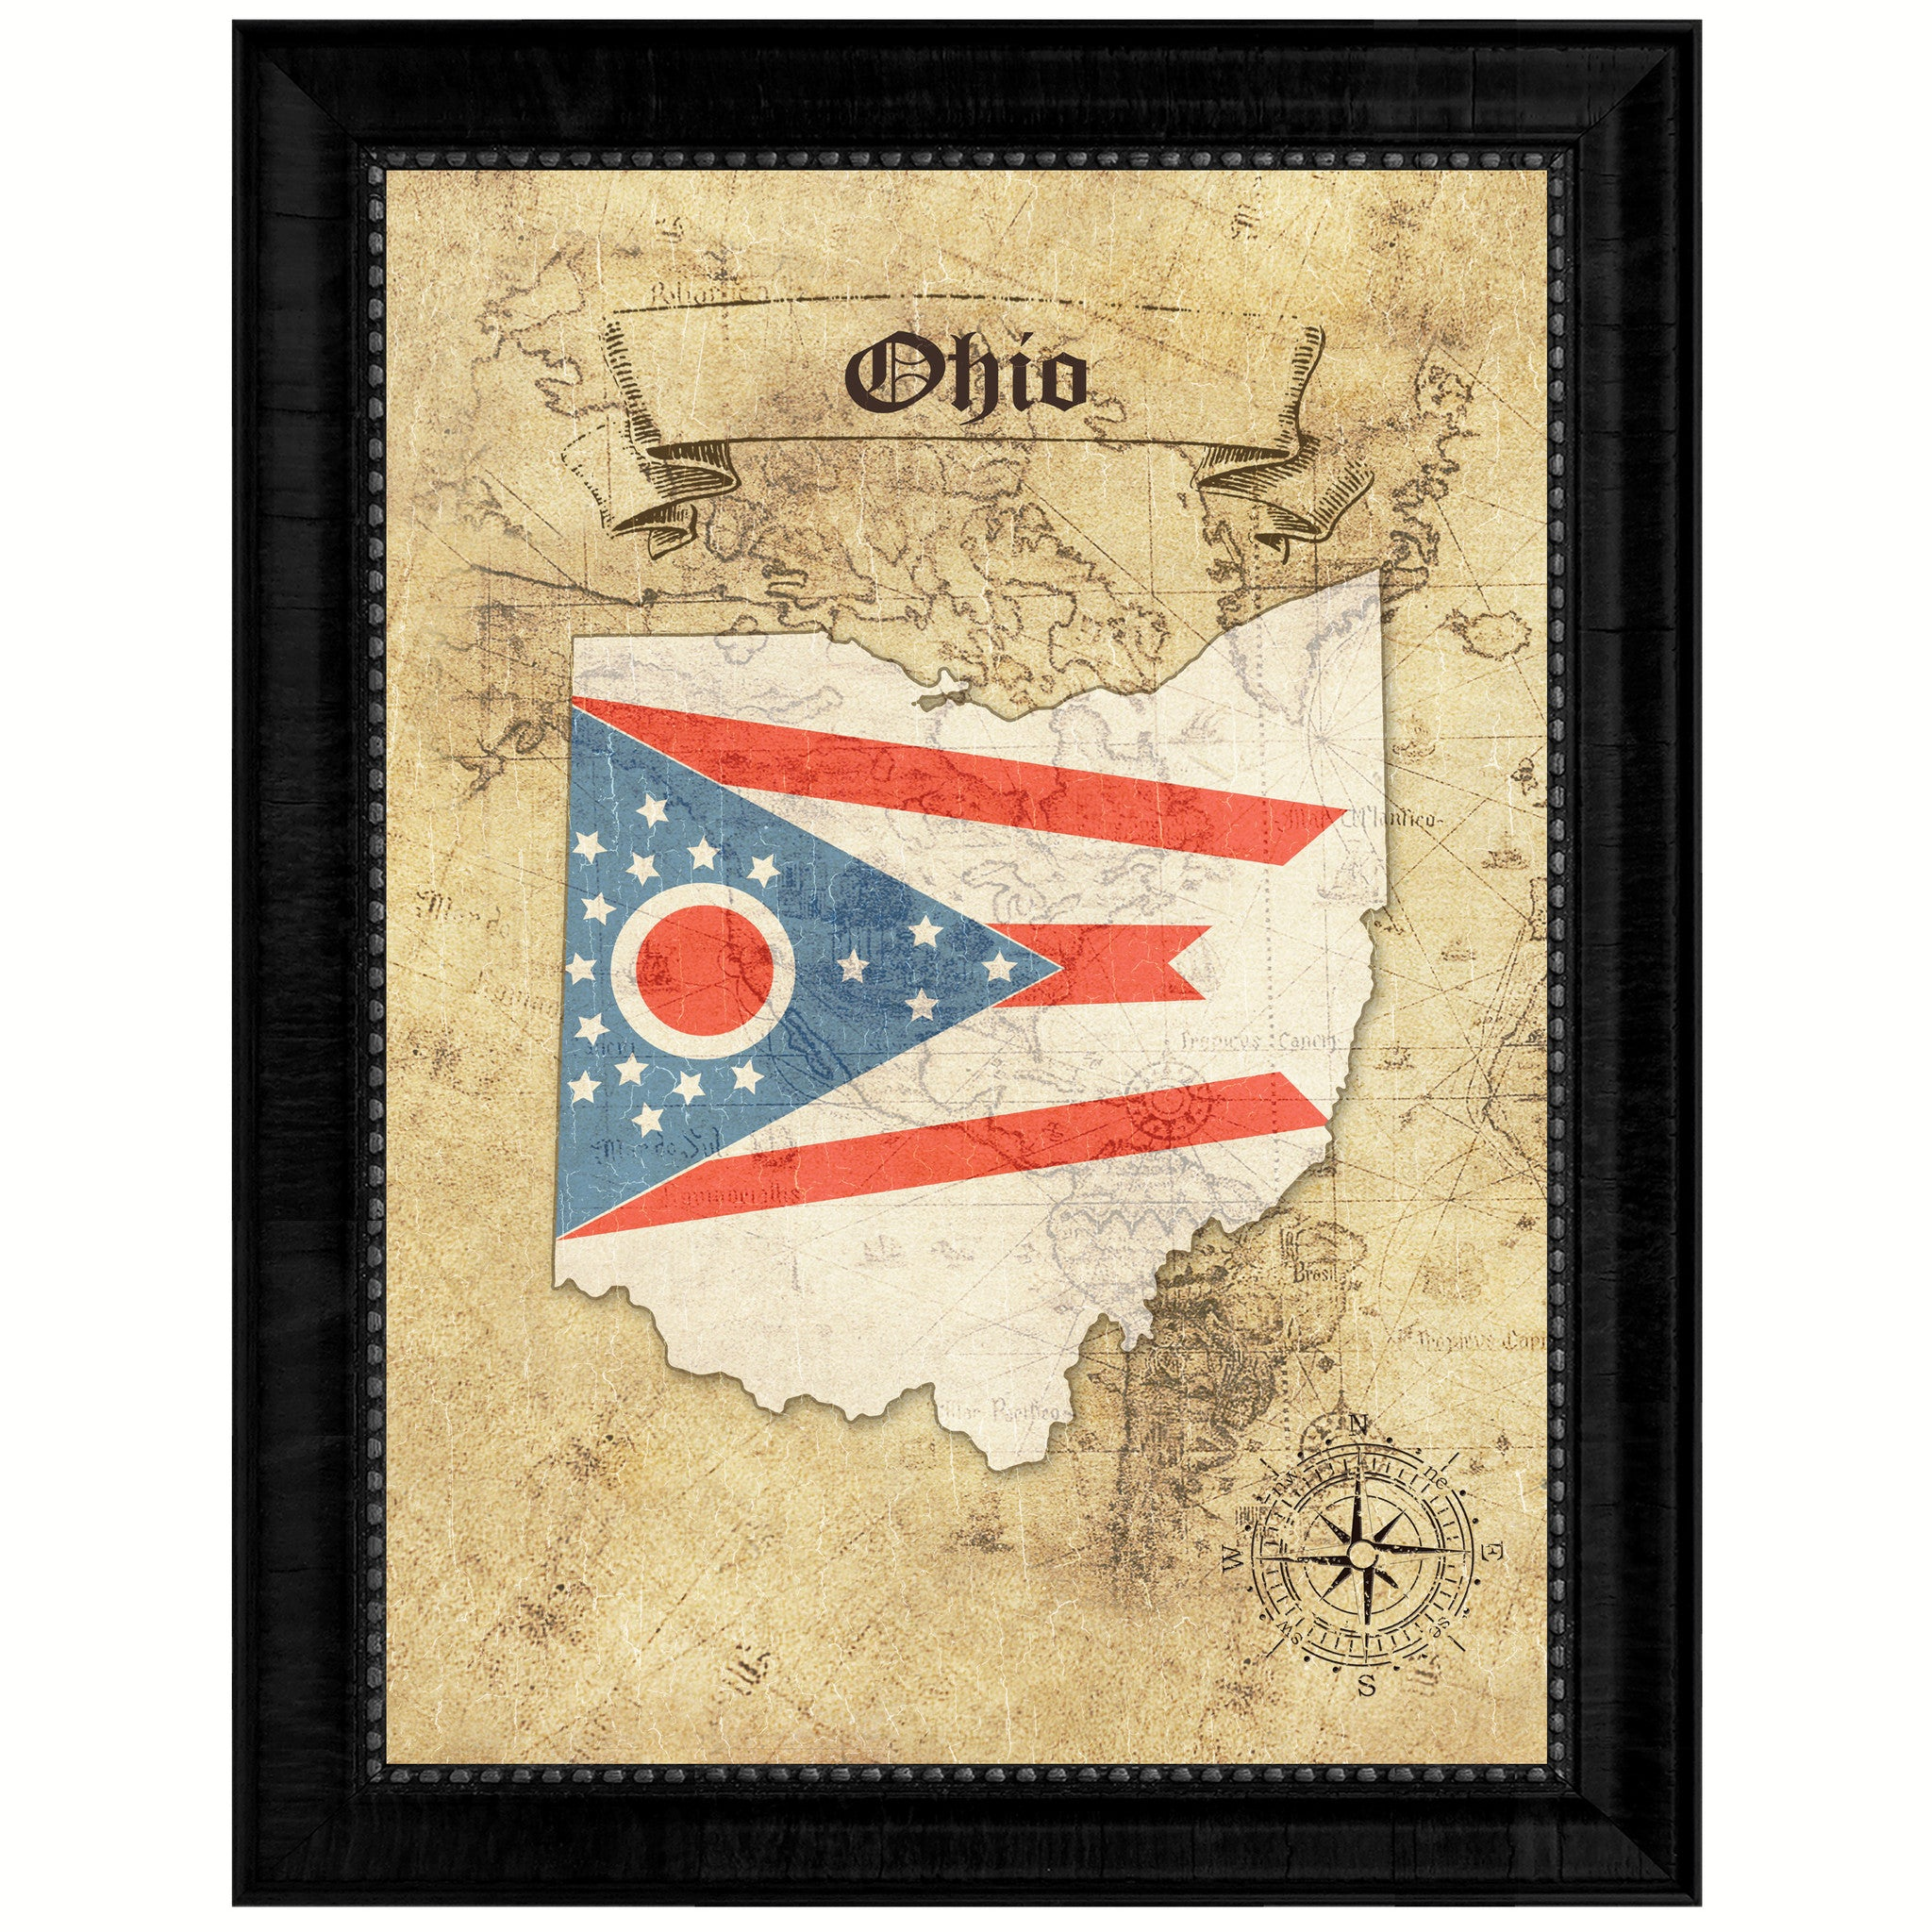 OhioState Vintage MapArt Office Wall Home Decor Rustic Gift Ideas ...